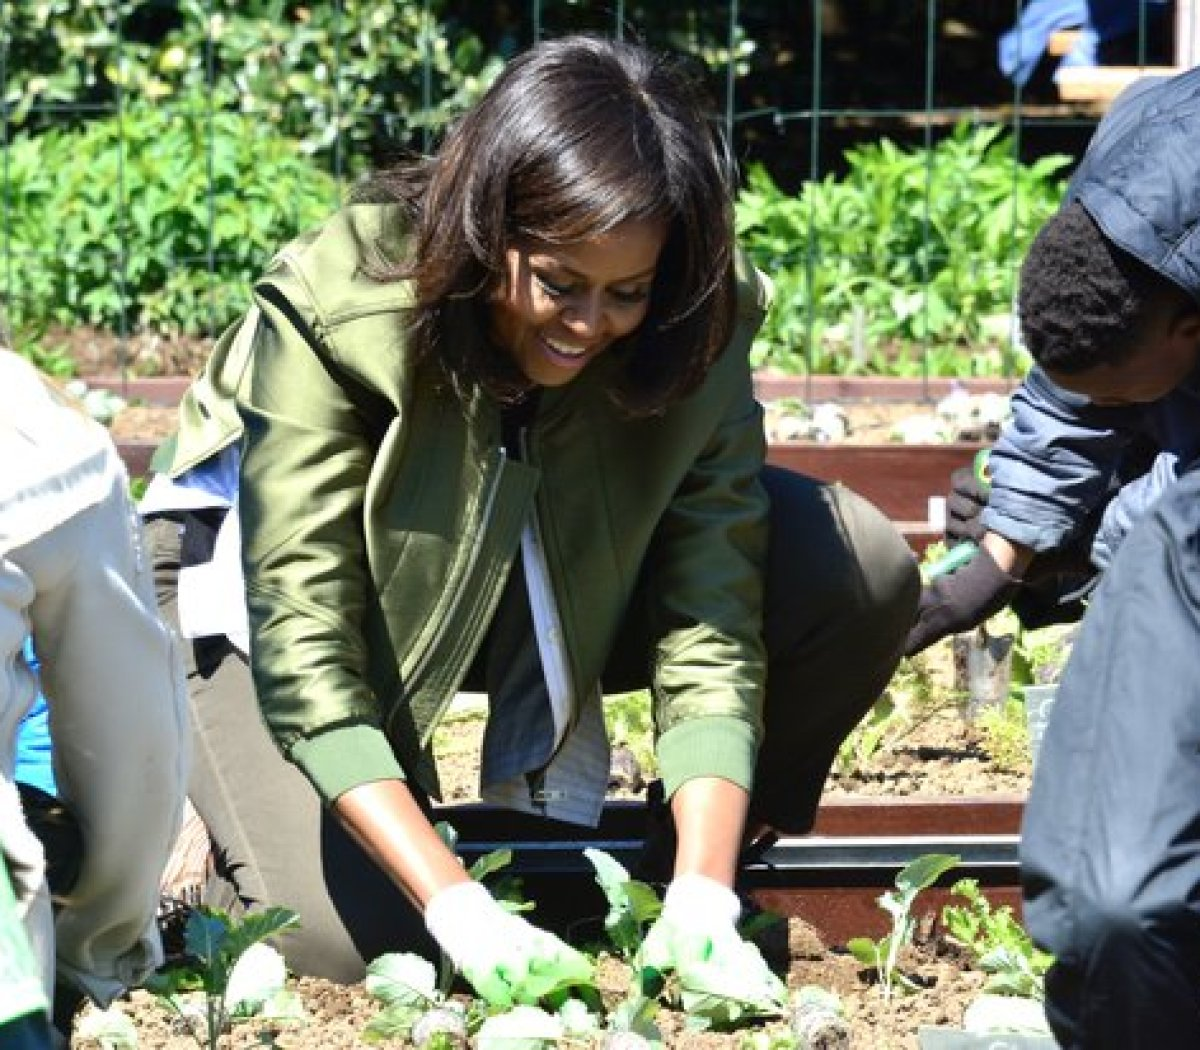 First Lady Michelle Obama gets down to help plant the Kitchen Garden at the White House Tuesday, April 5, 2016. /Photo by Travis Riddick @actor_tr